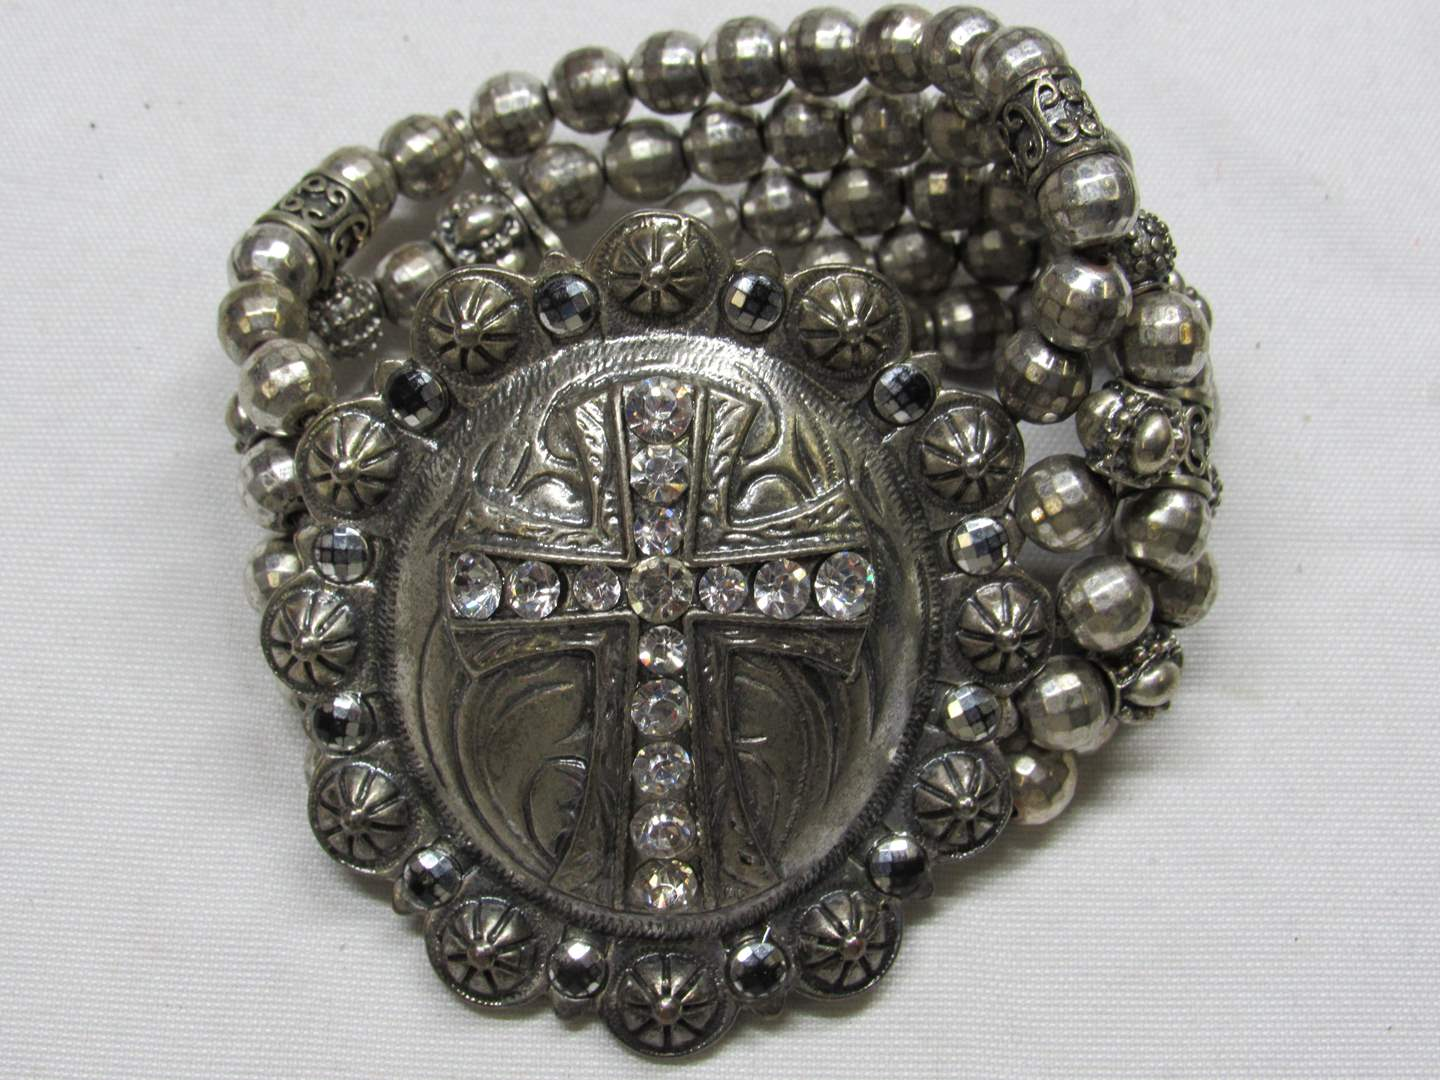 Lot # 173  Western style w/silver (not sterling) beads with cross design bracelet (main image)